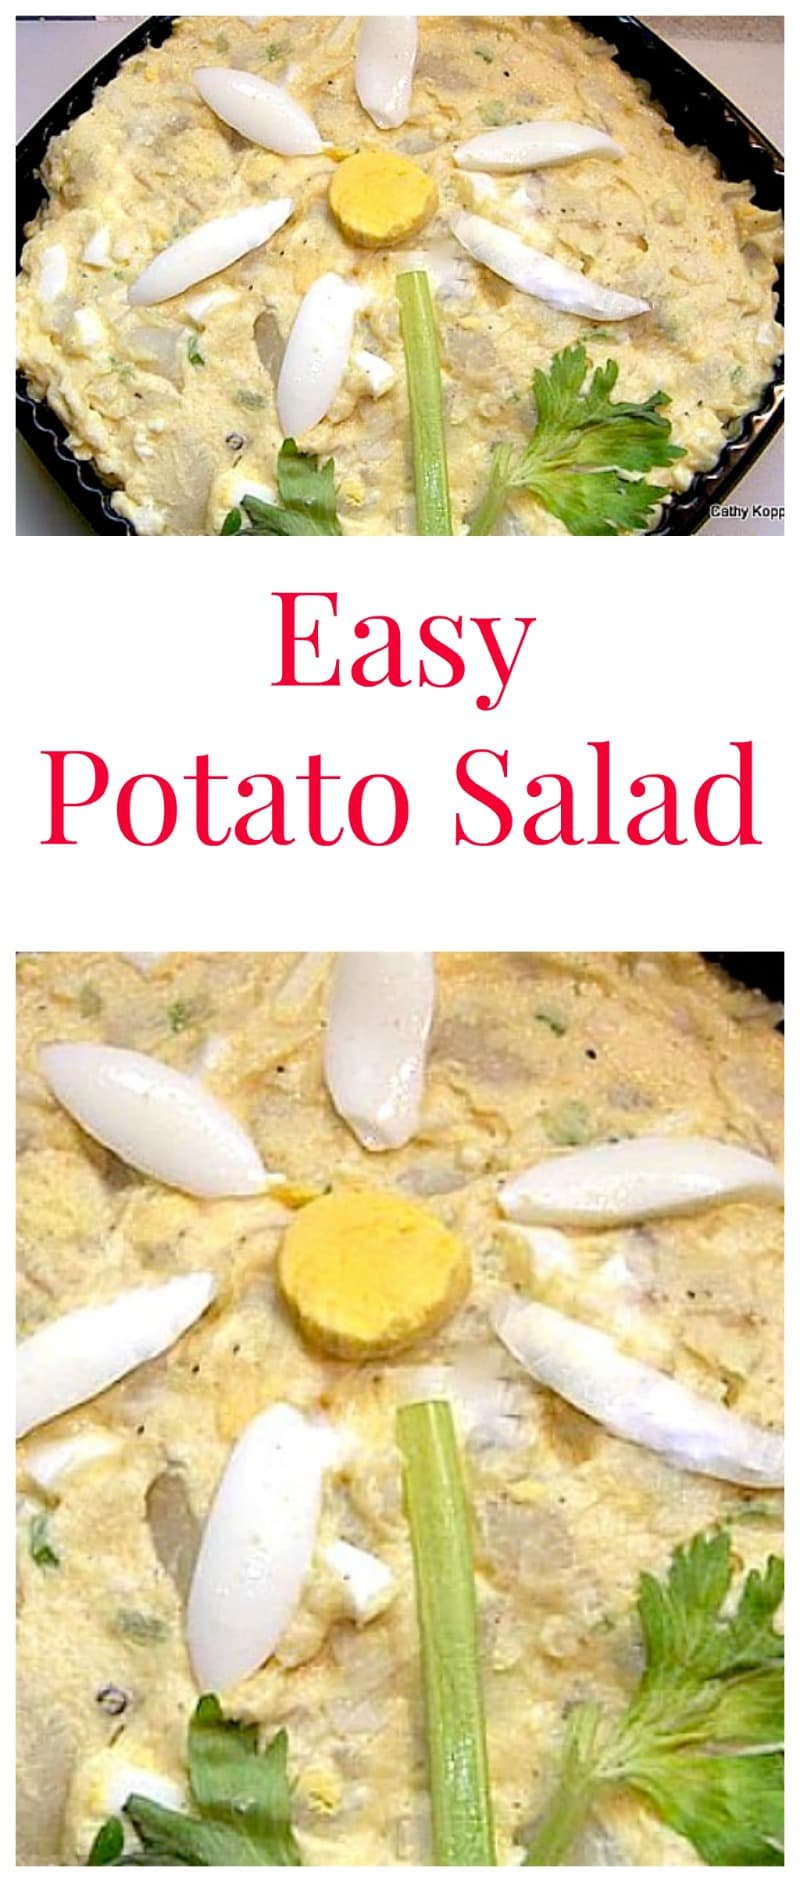 Easy Potato Salad. Lovely flavors and always fun with a pattern!